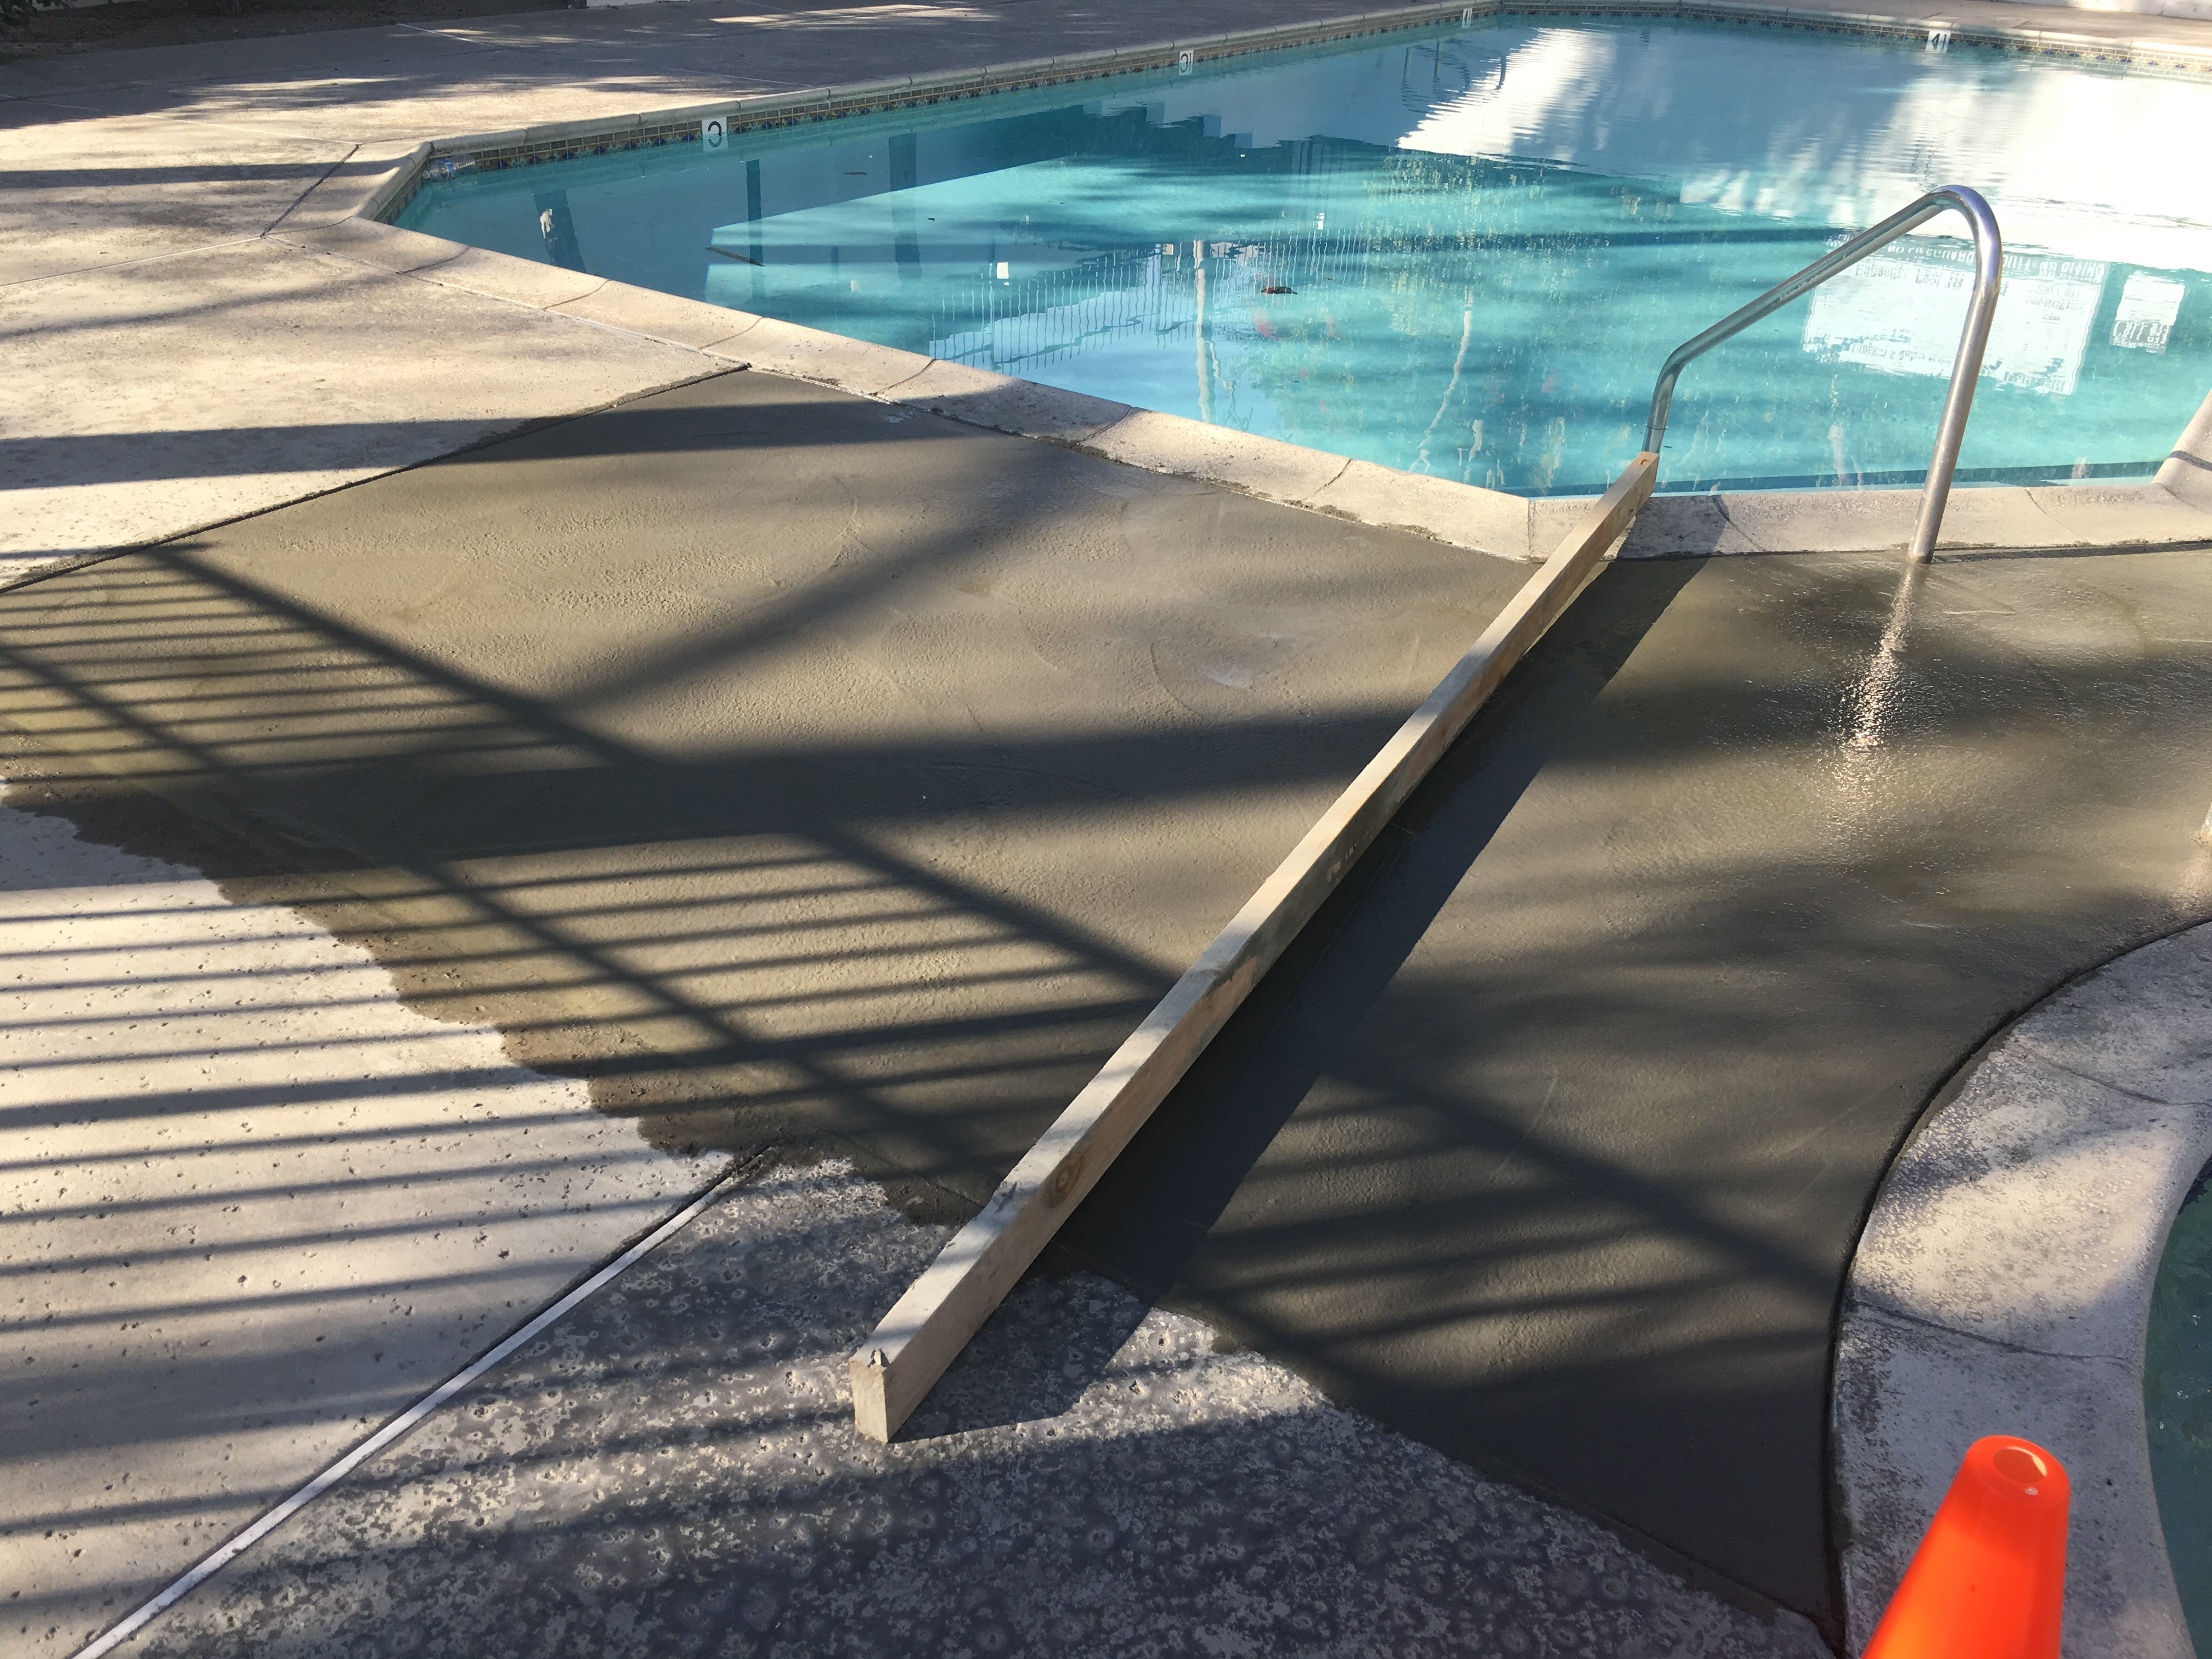 Slurry For Waterproofing Construction Joints In Pools : Repair and resurface of three residential pool decks